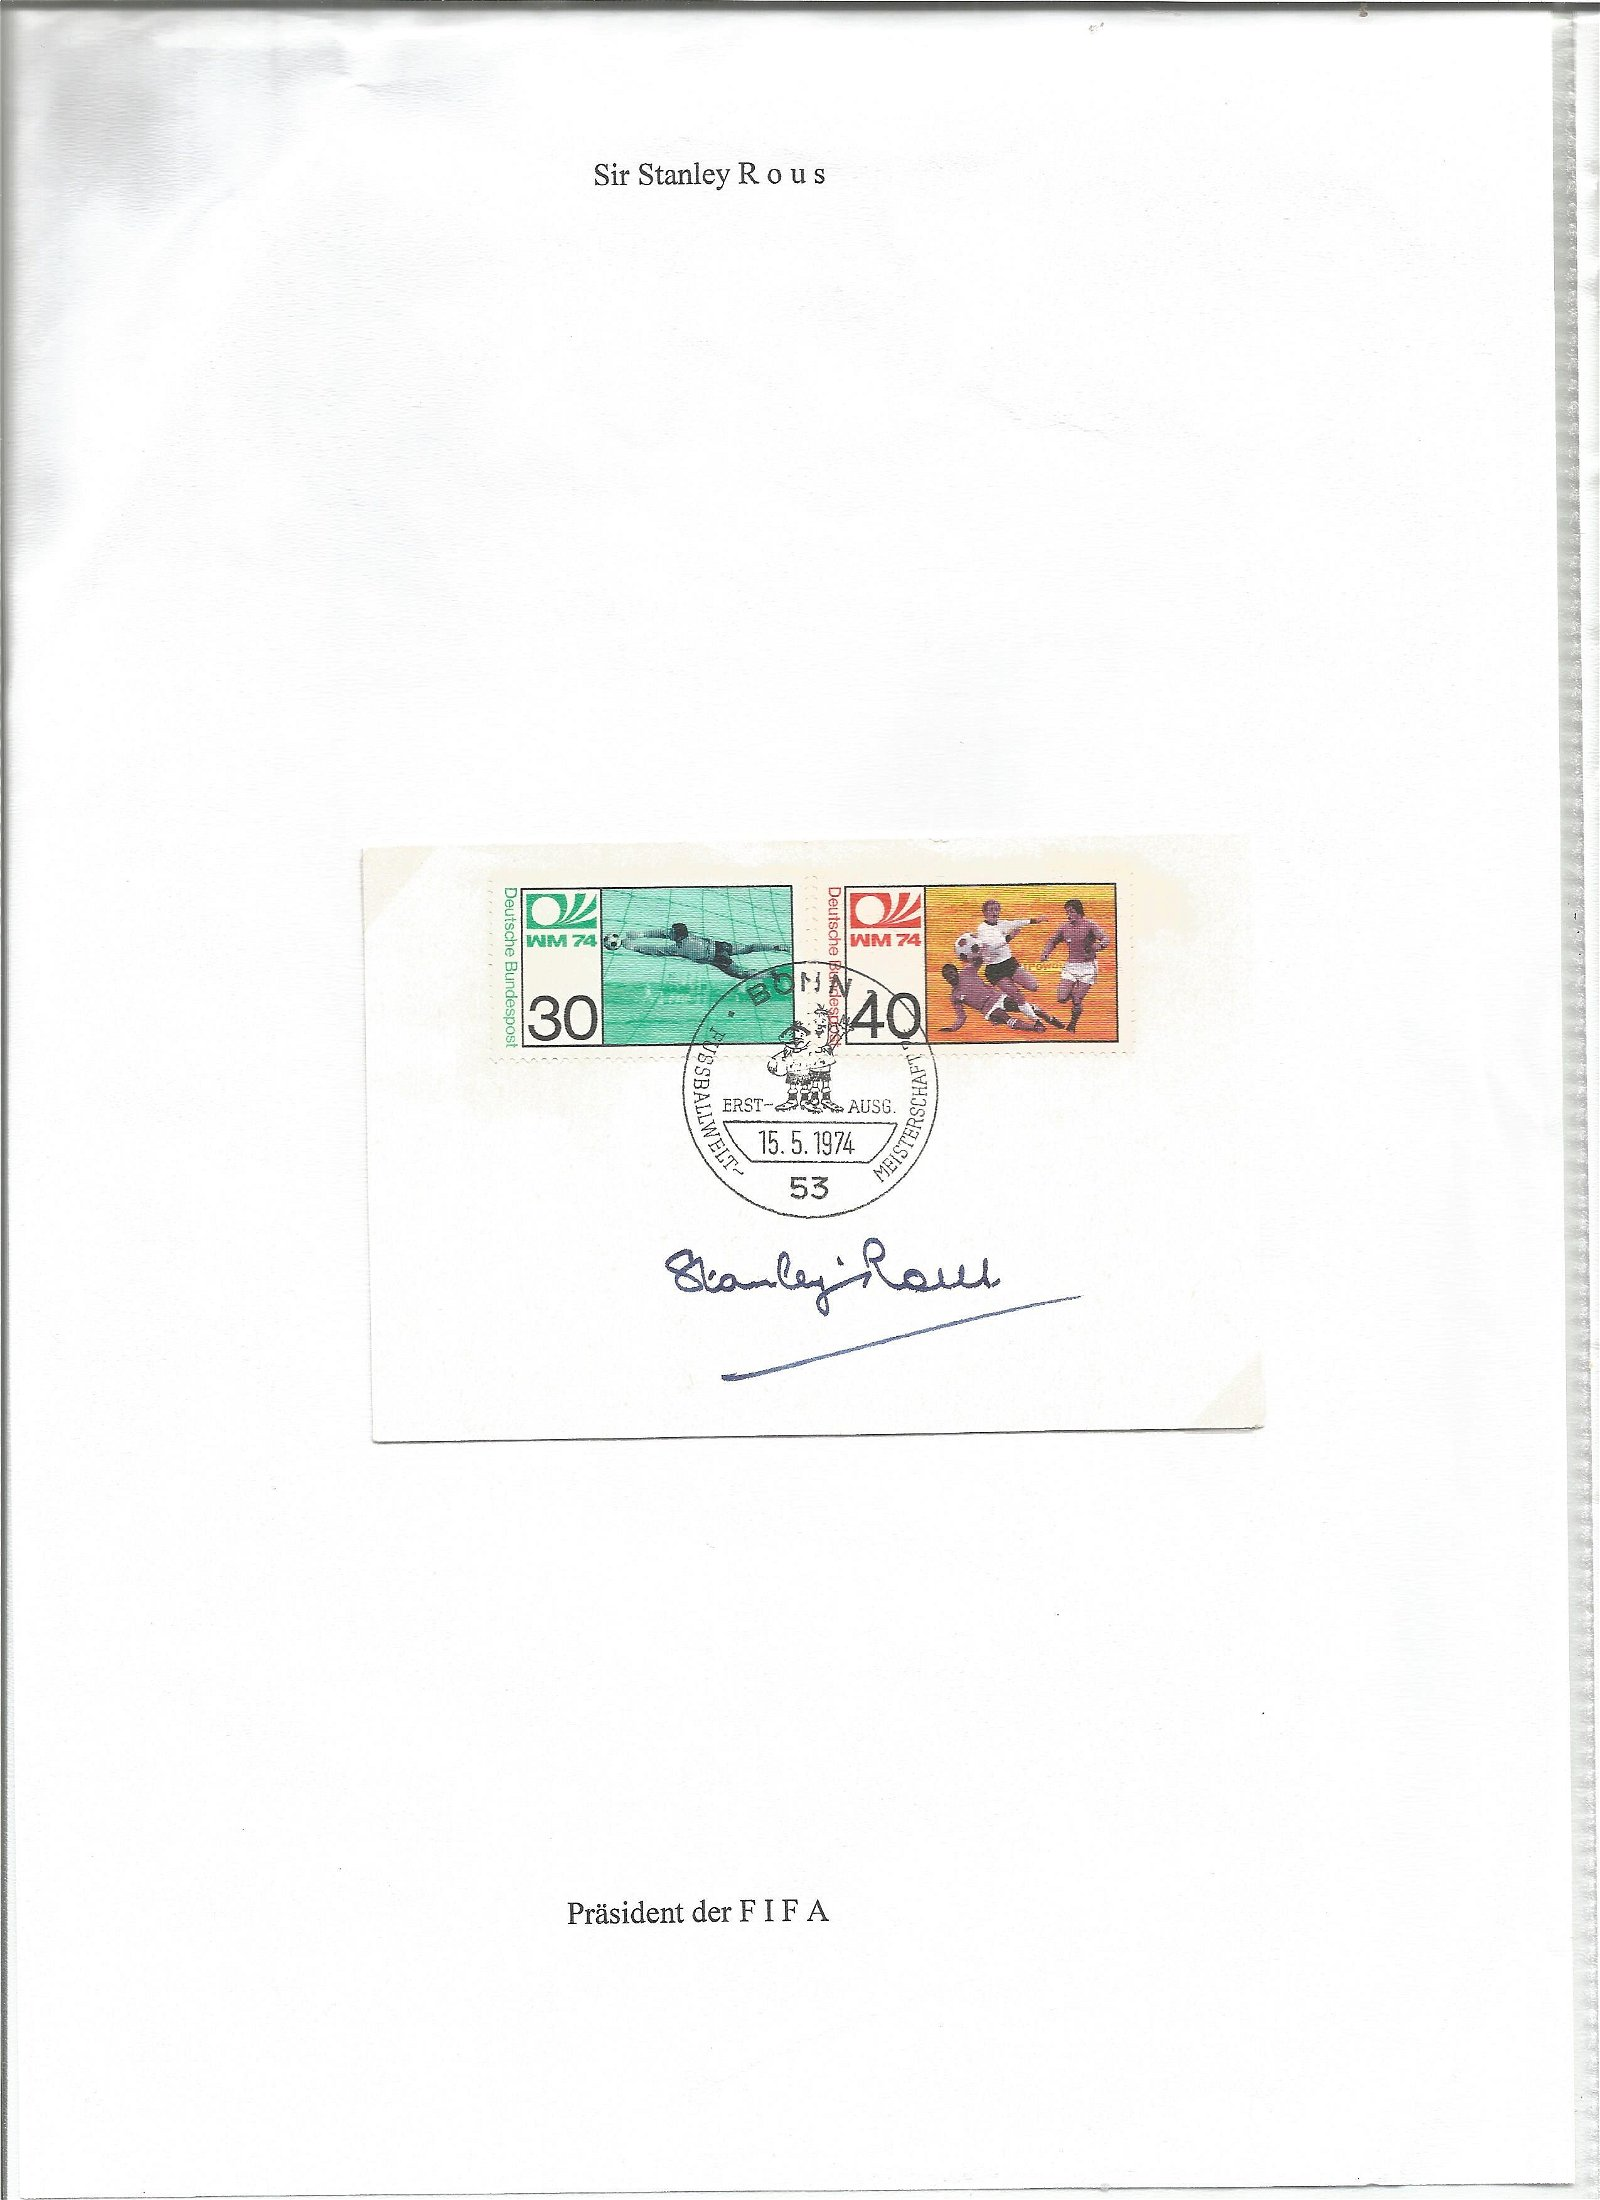 Stanley Rous signed 1974 sport stamp sheet set on